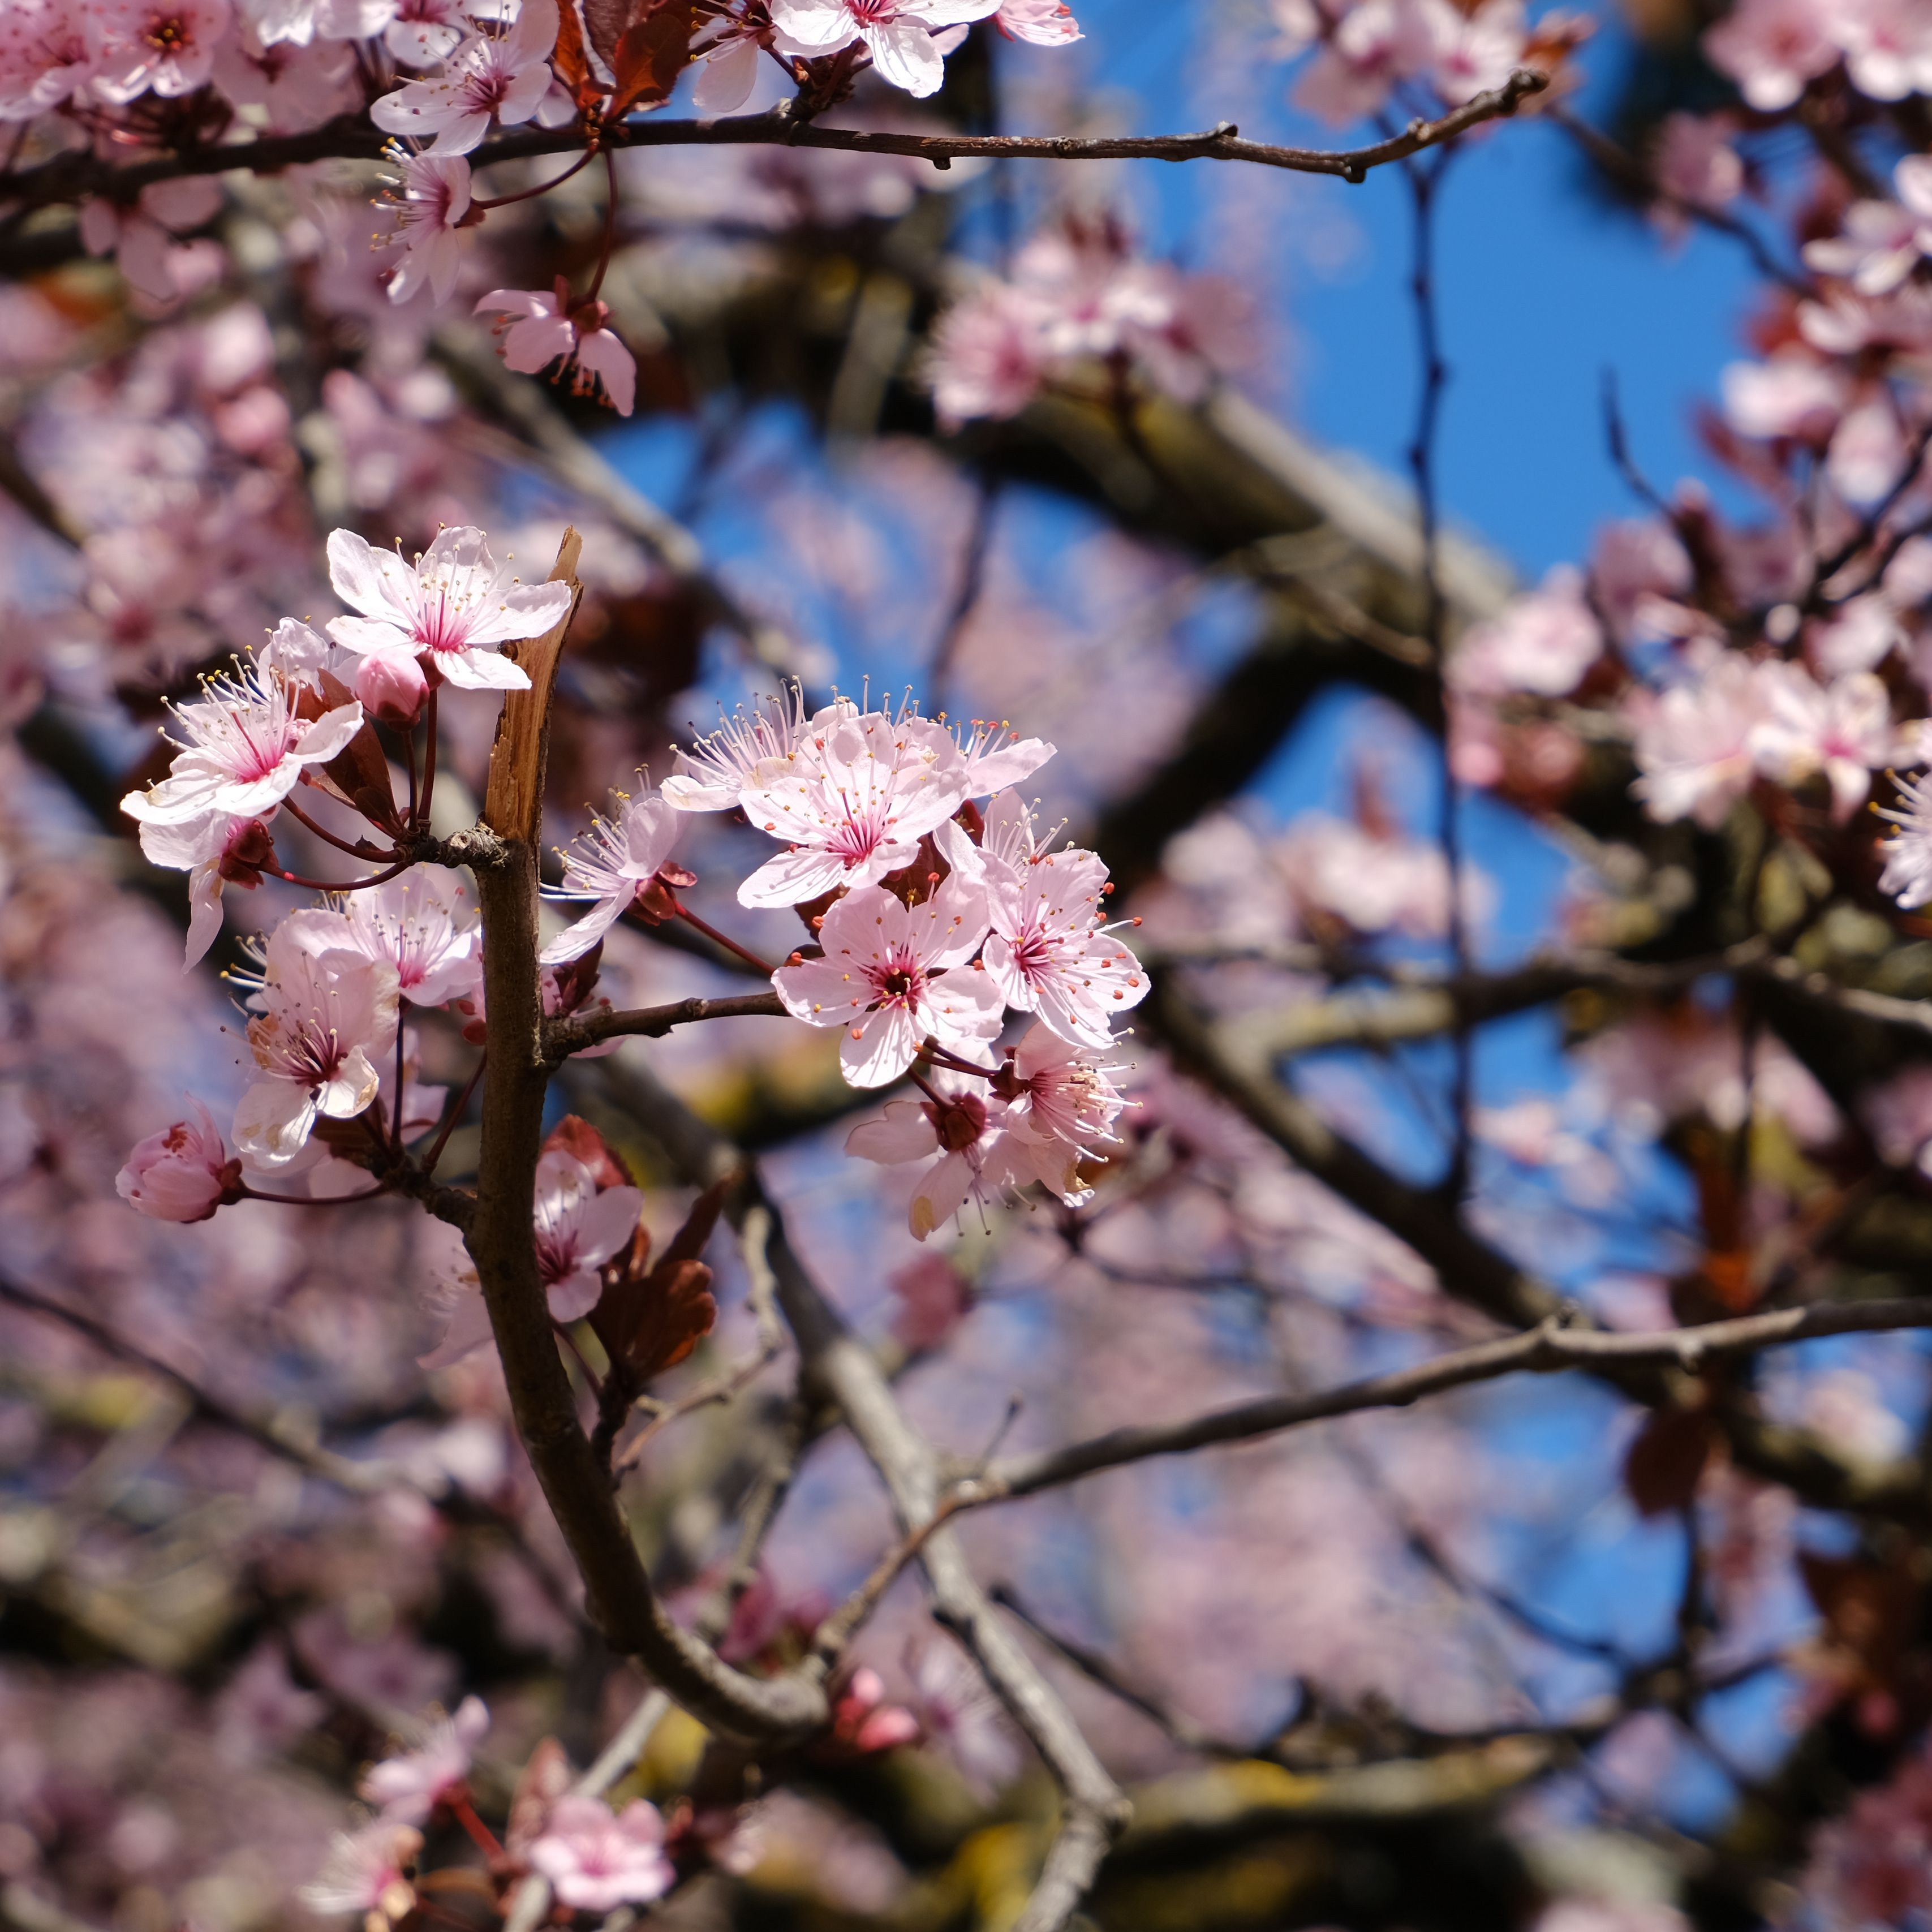 3415x3415 Wallpaper cherry, flowers, petals, branches, spring, macro, pink